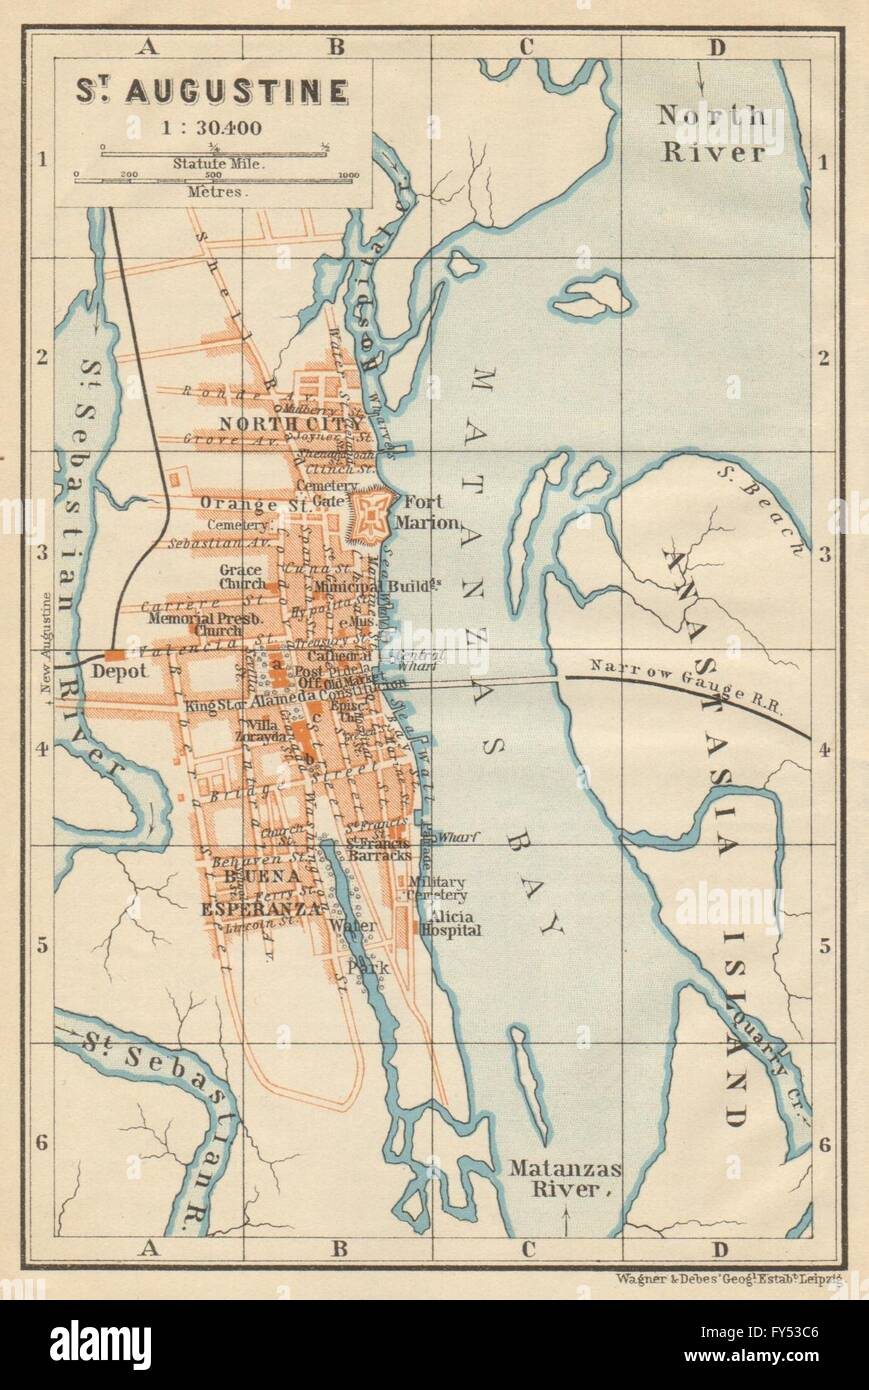 ST AUGUSTINE Antique Town City Plan Florida BAEDEKER 1904 Map